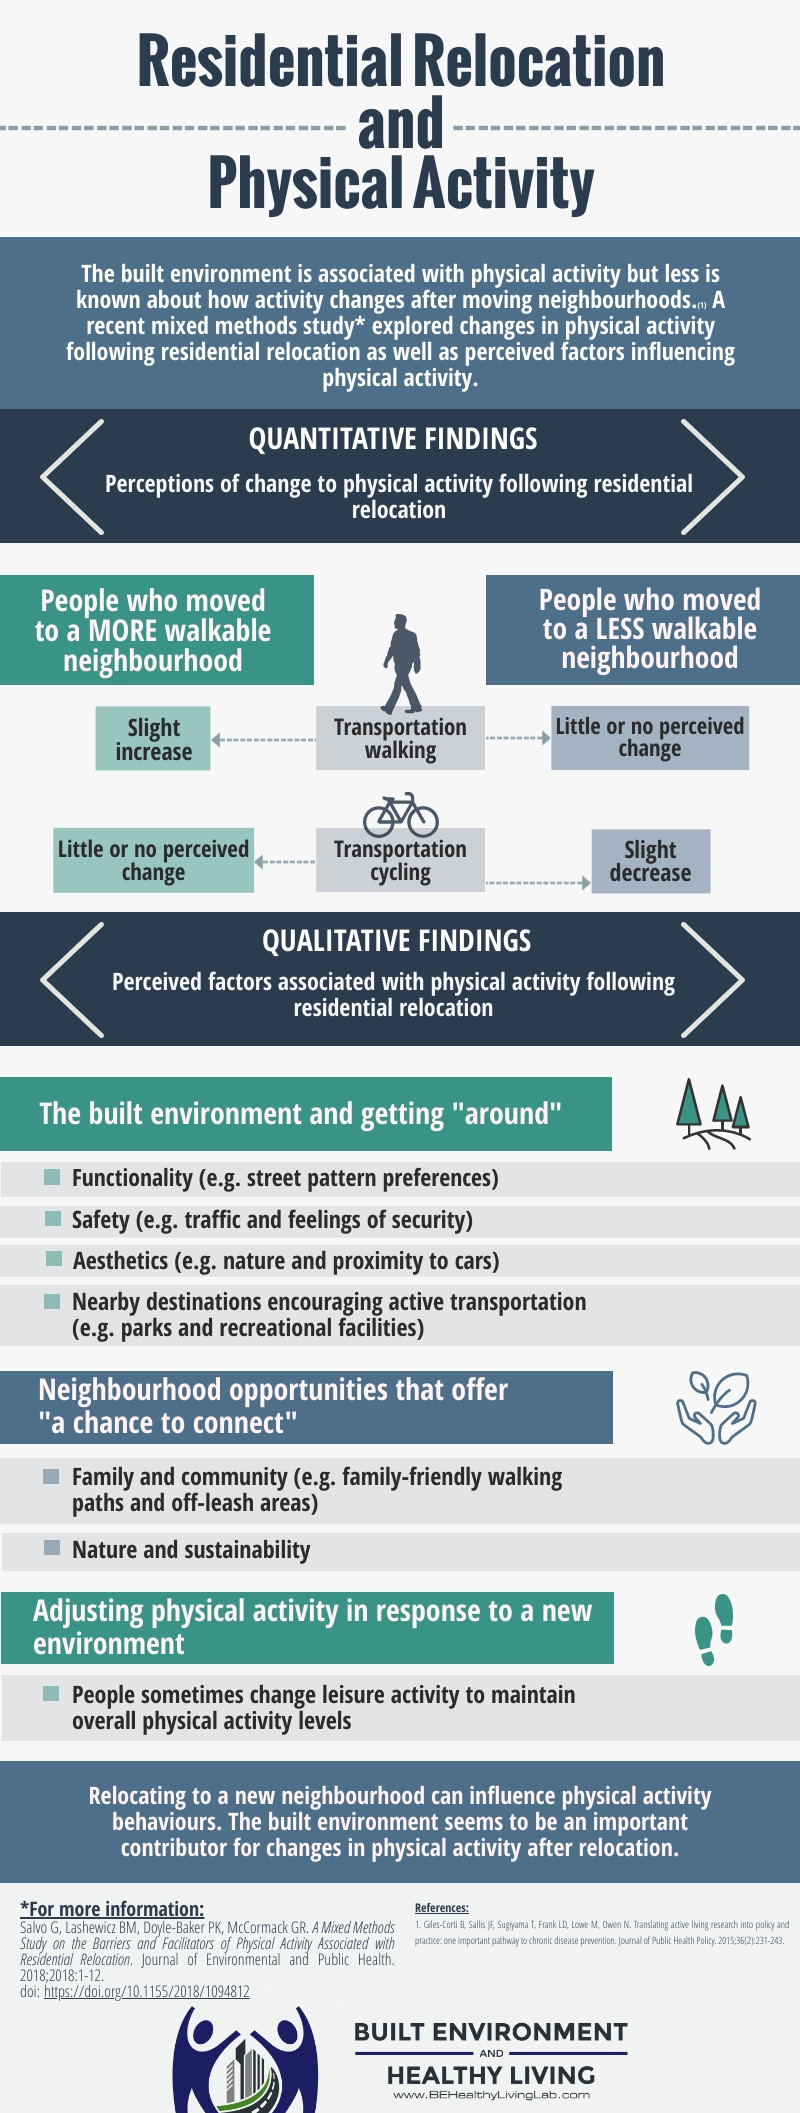 Residential Relocation and Physical Activity